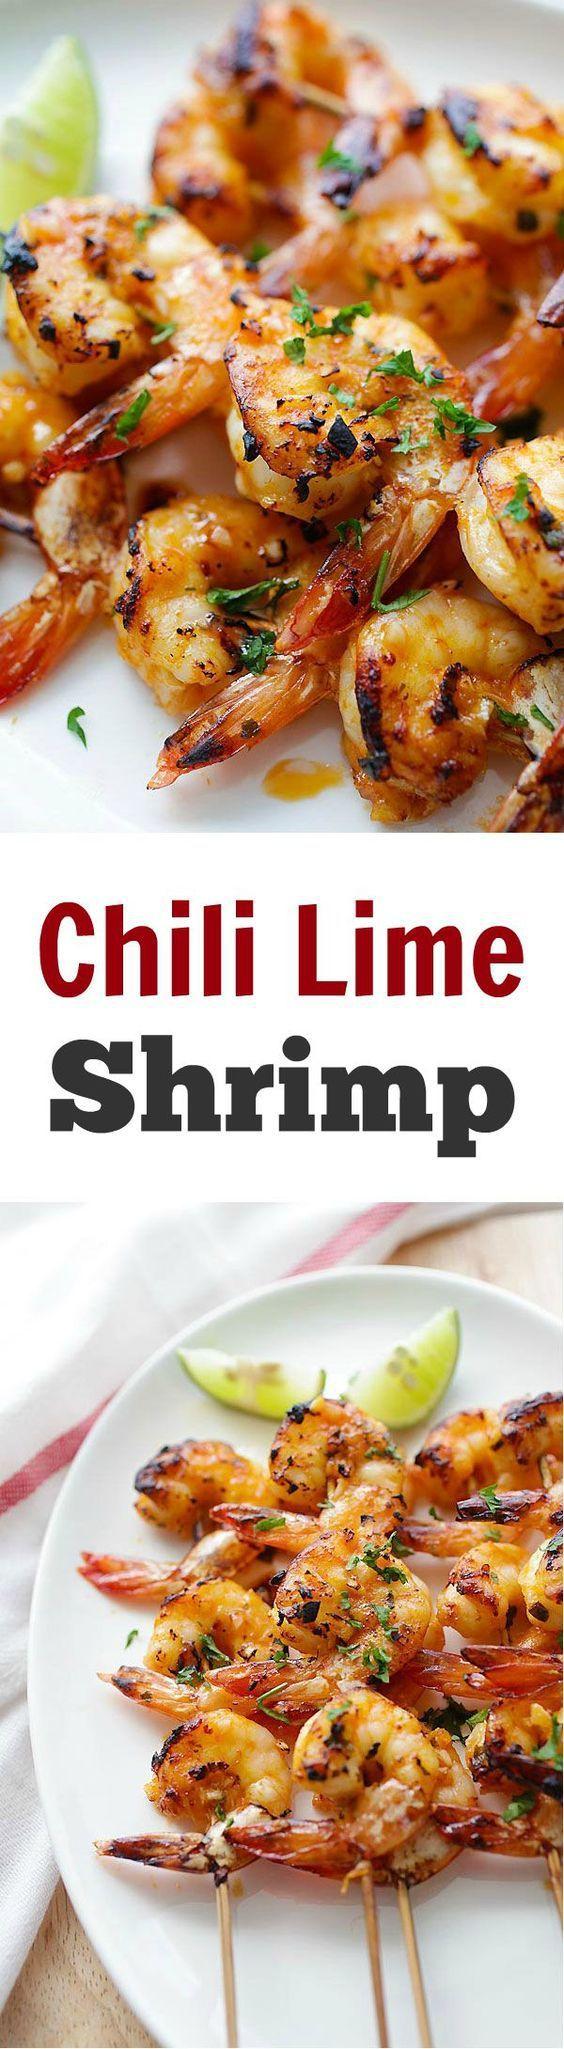 Excellent For Shrimp Tacos!Chili Lime Shrimp – juicy and succulent shrimp marinated with chili and lime and grill.